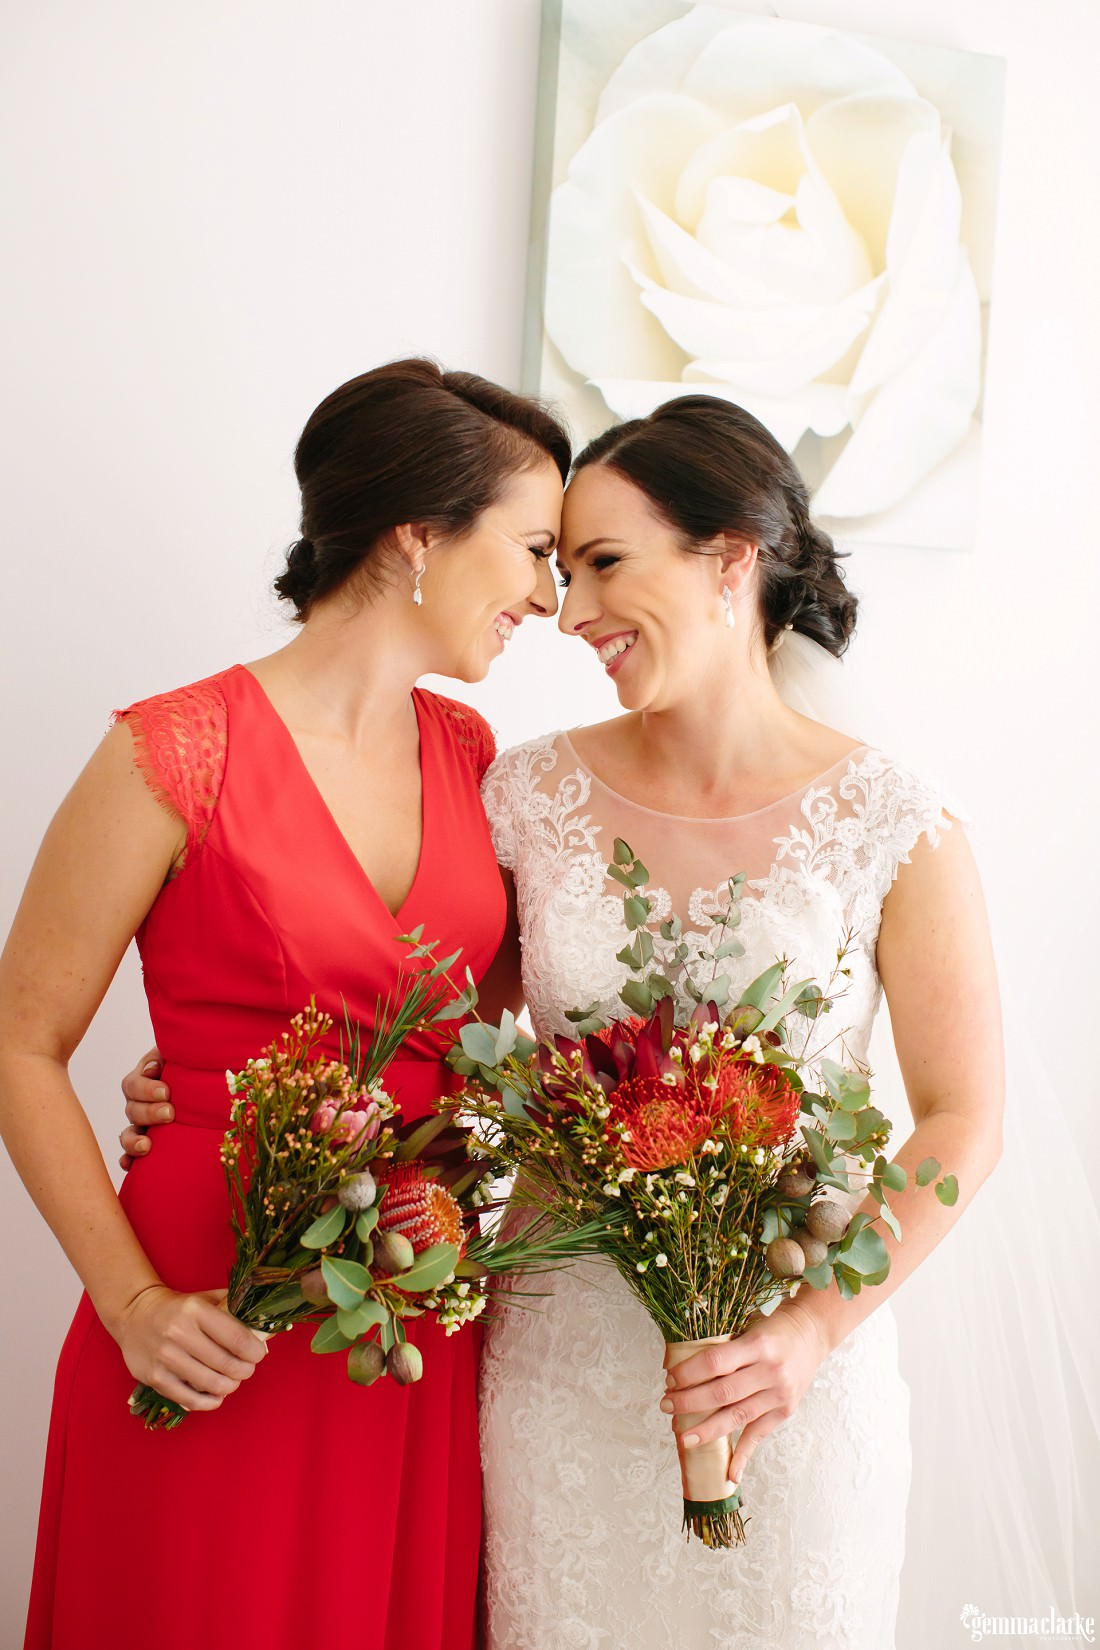 A bride and bridesmaid eskimo kiss while holding bouquets of native Australian flowers